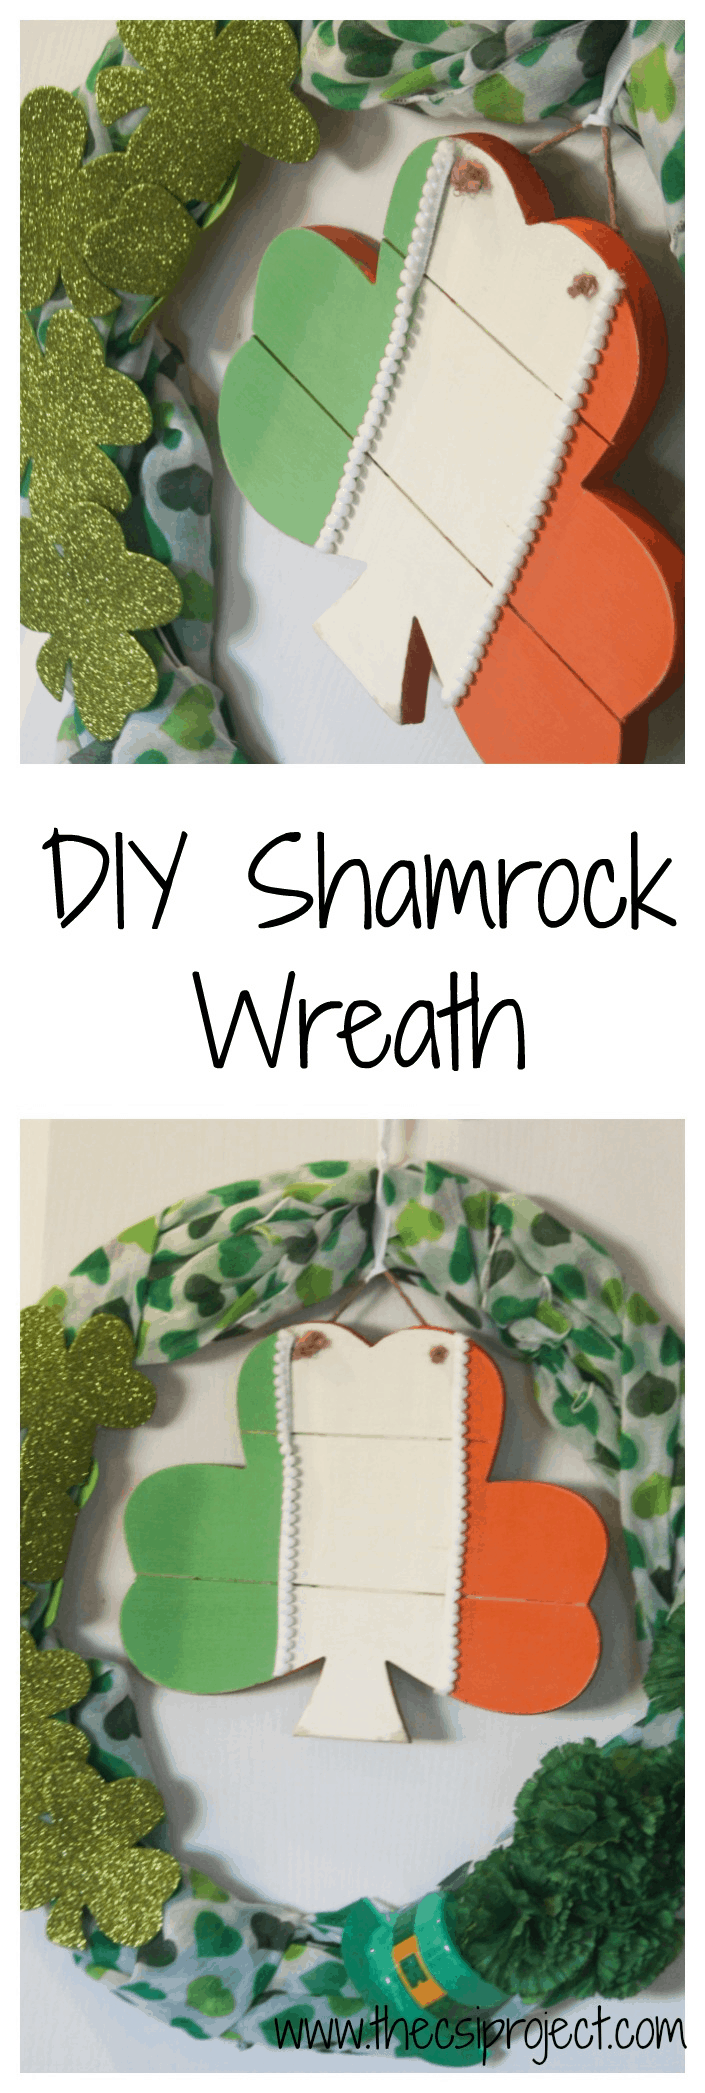 DIY Shamrock Wreath{St. Patrick's Day}